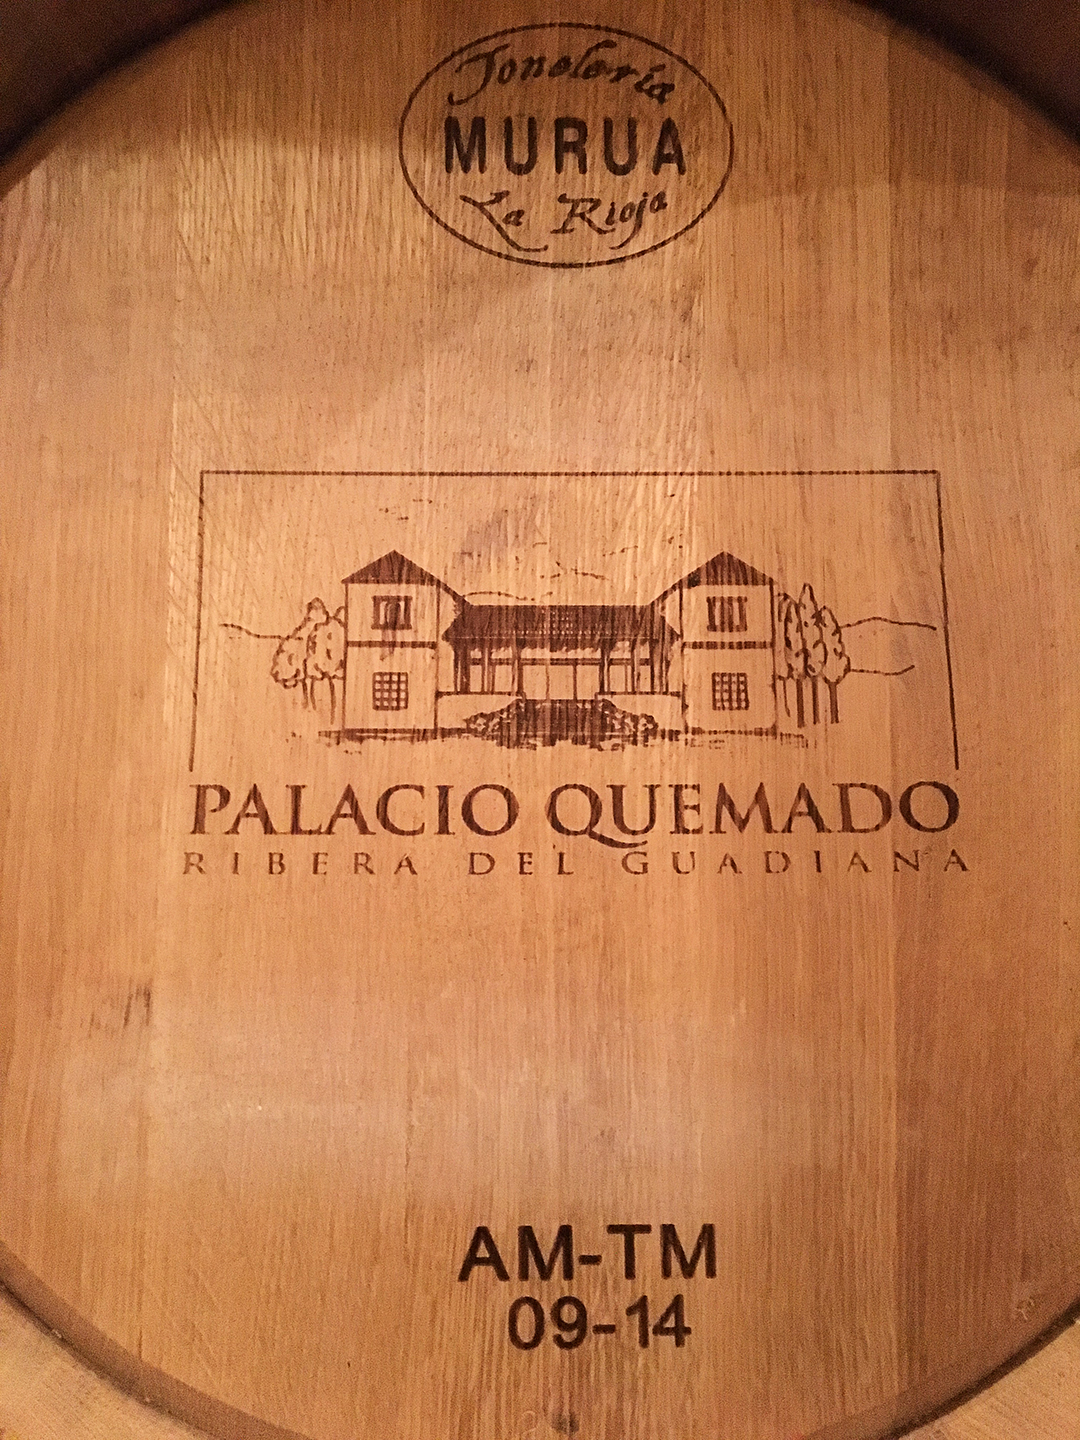 barrel end bearing the name and image of Palacio Quemado